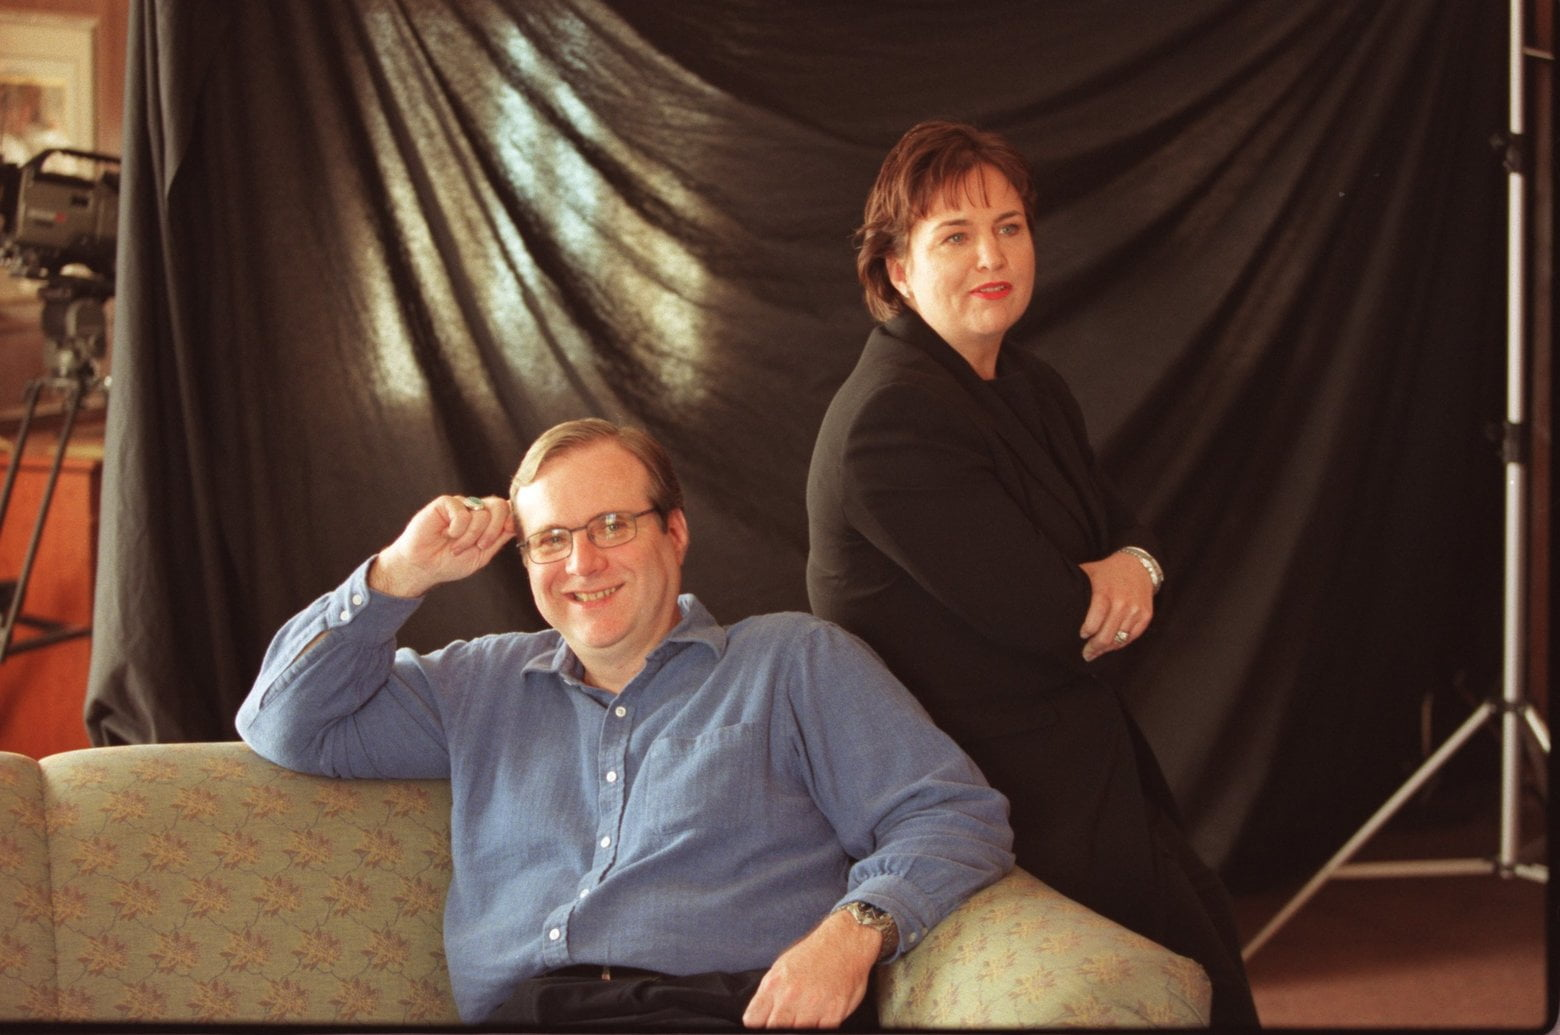 Paul Allen's Sister announced as the executor and trustee of his estate